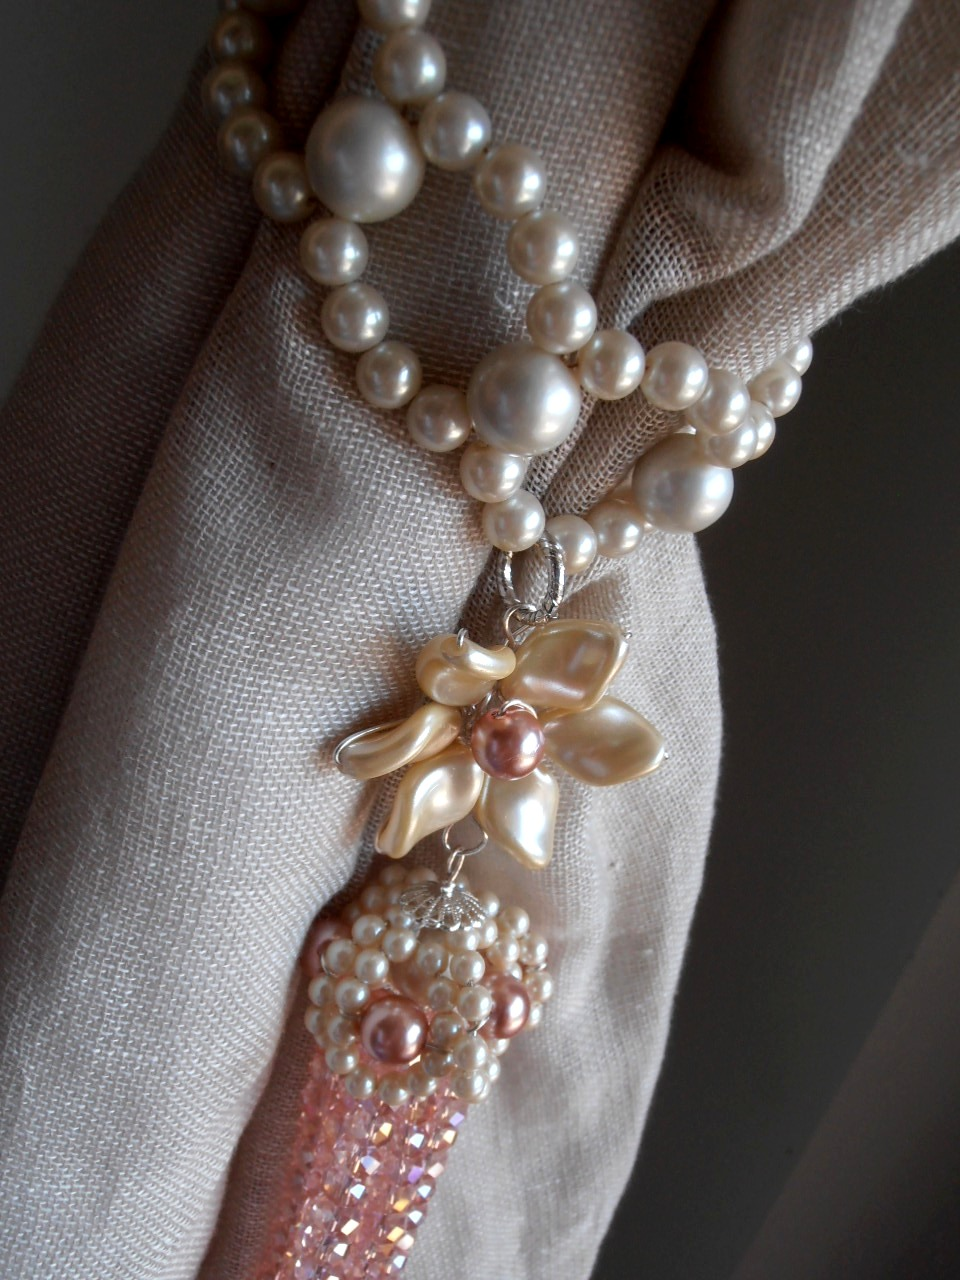 Pair of pink decorative curtain tiebacks pearls and crystals flowers